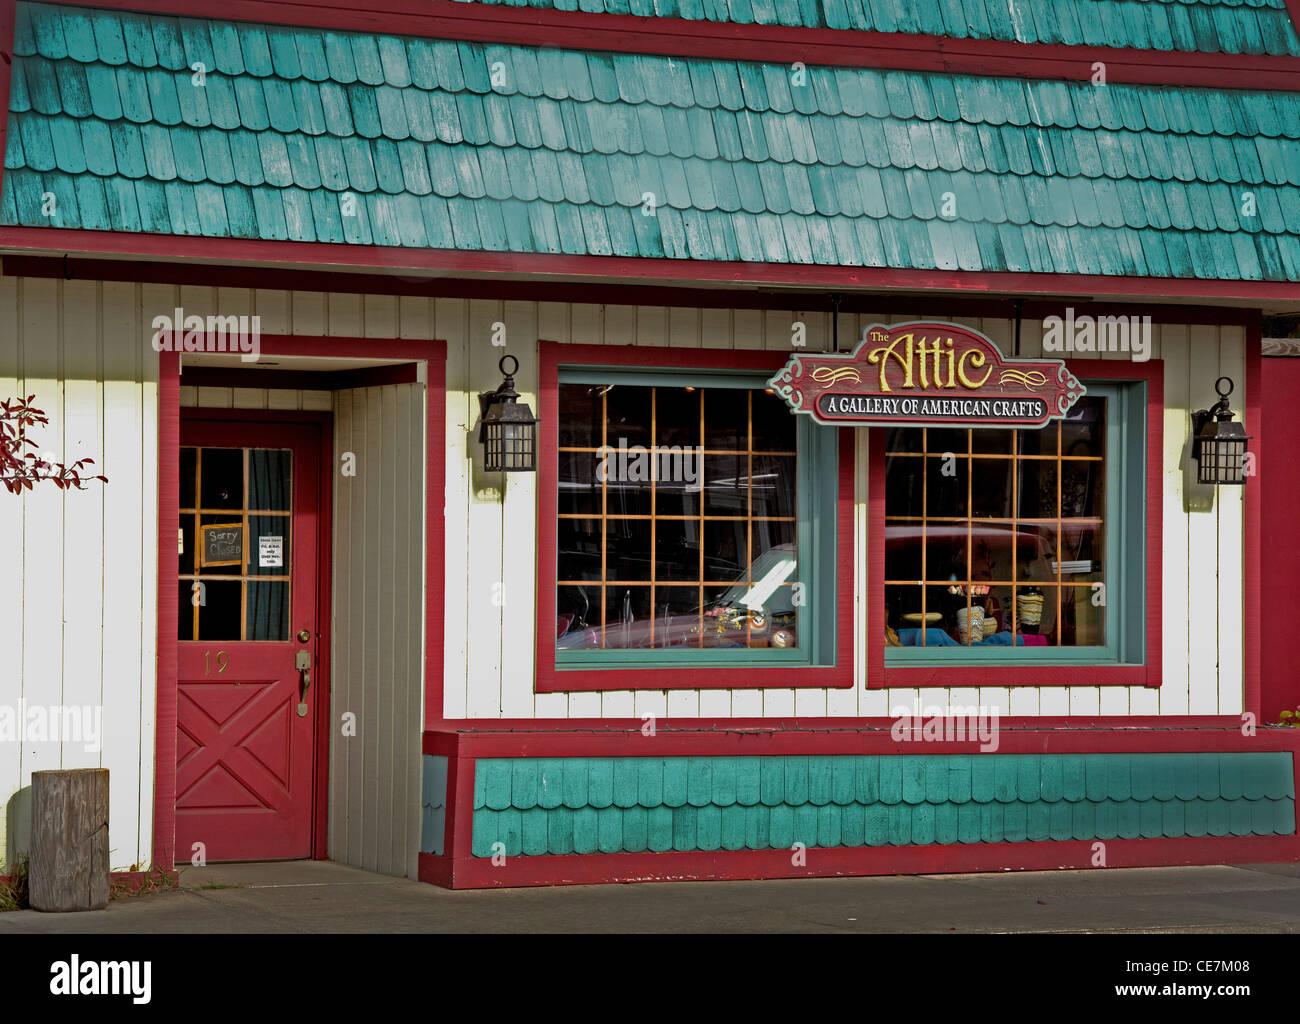 The Attic art and craft shop in Grand Marais, Minnesota on the North Shore along Lake Superior - Stock Image